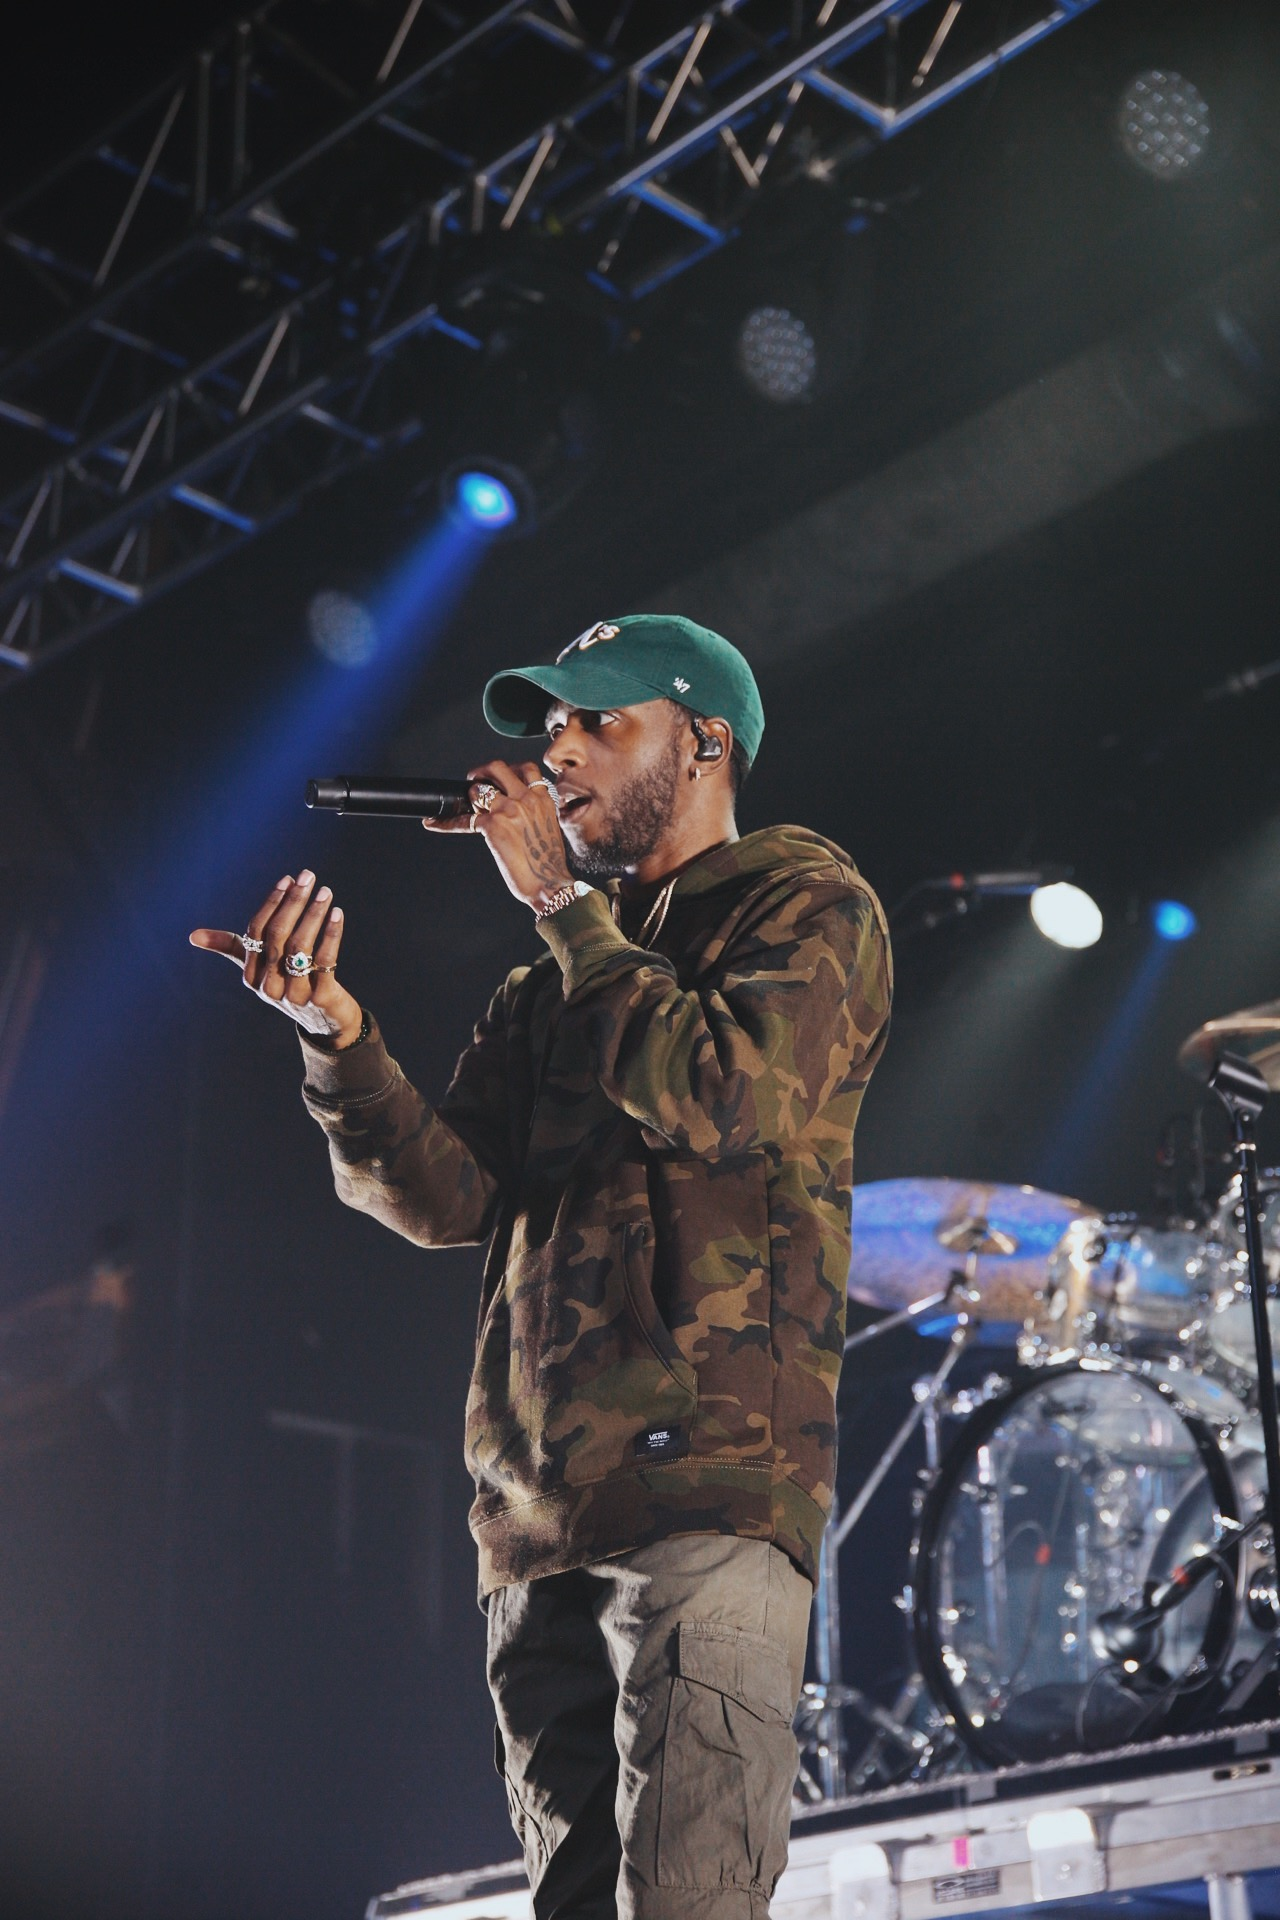 6lack in Phoenix, Arizona in December 2019 - 3.jpg